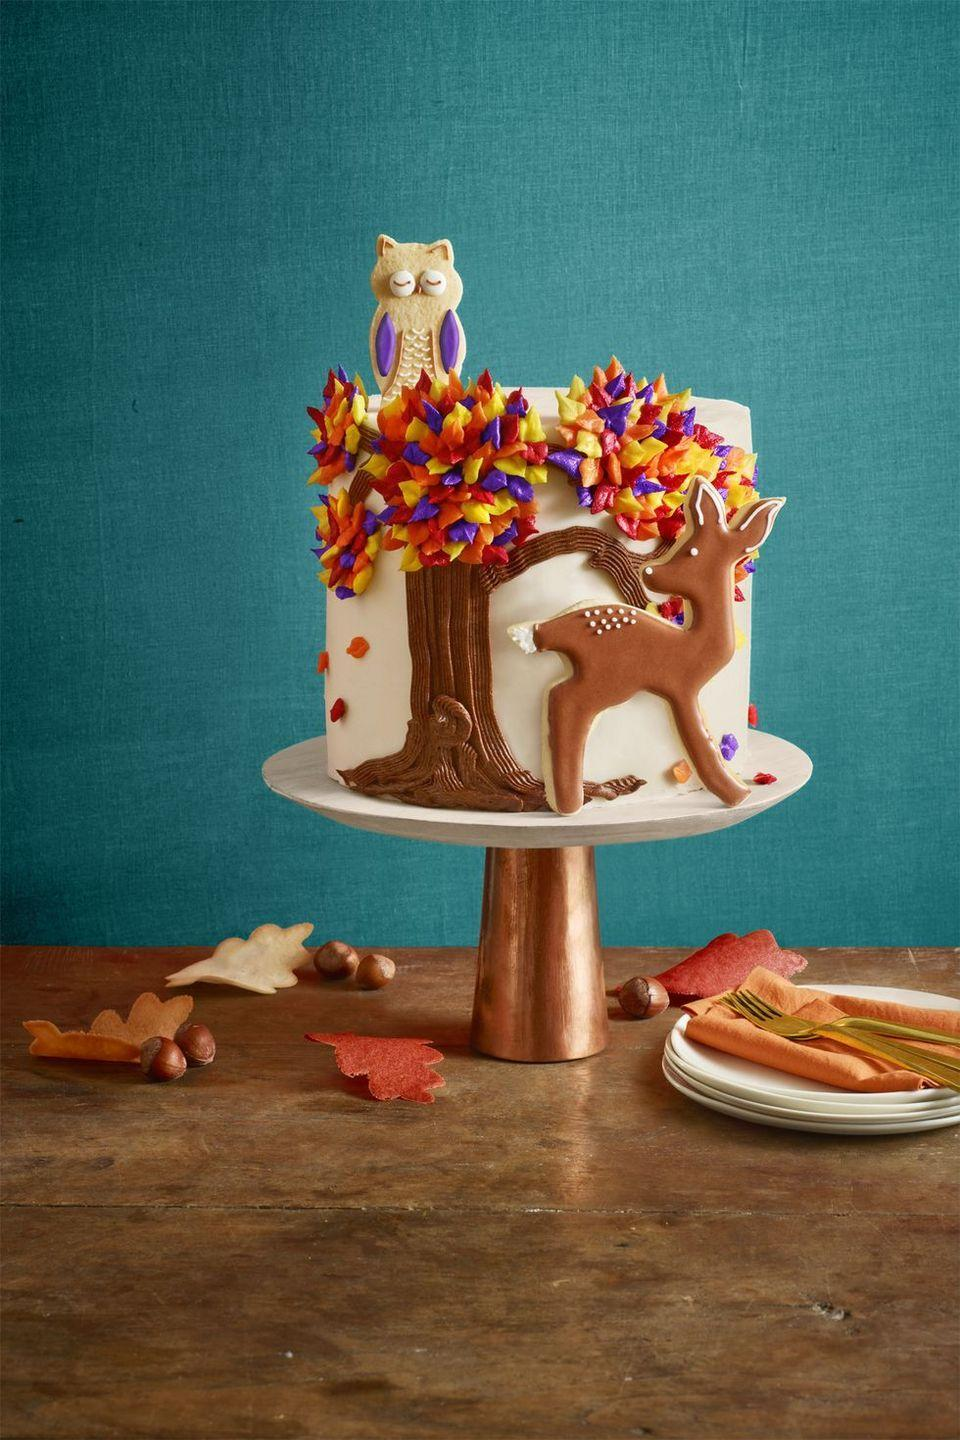 "<p>Using a piping bag (and the easiest-ever buttercream frosting) to make fun fall decorations on this rich chocolate cake.</p><p><em><a href=""https://www.womansday.com/food-recipes/food-drinks/recipes/a60519/autumn-cake-recipe/"" rel=""nofollow noopener"" target=""_blank"" data-ylk=""slk:Get the recipe from Woman's Day »"" class=""link rapid-noclick-resp"">Get the recipe from Woman's Day »</a></em></p>"